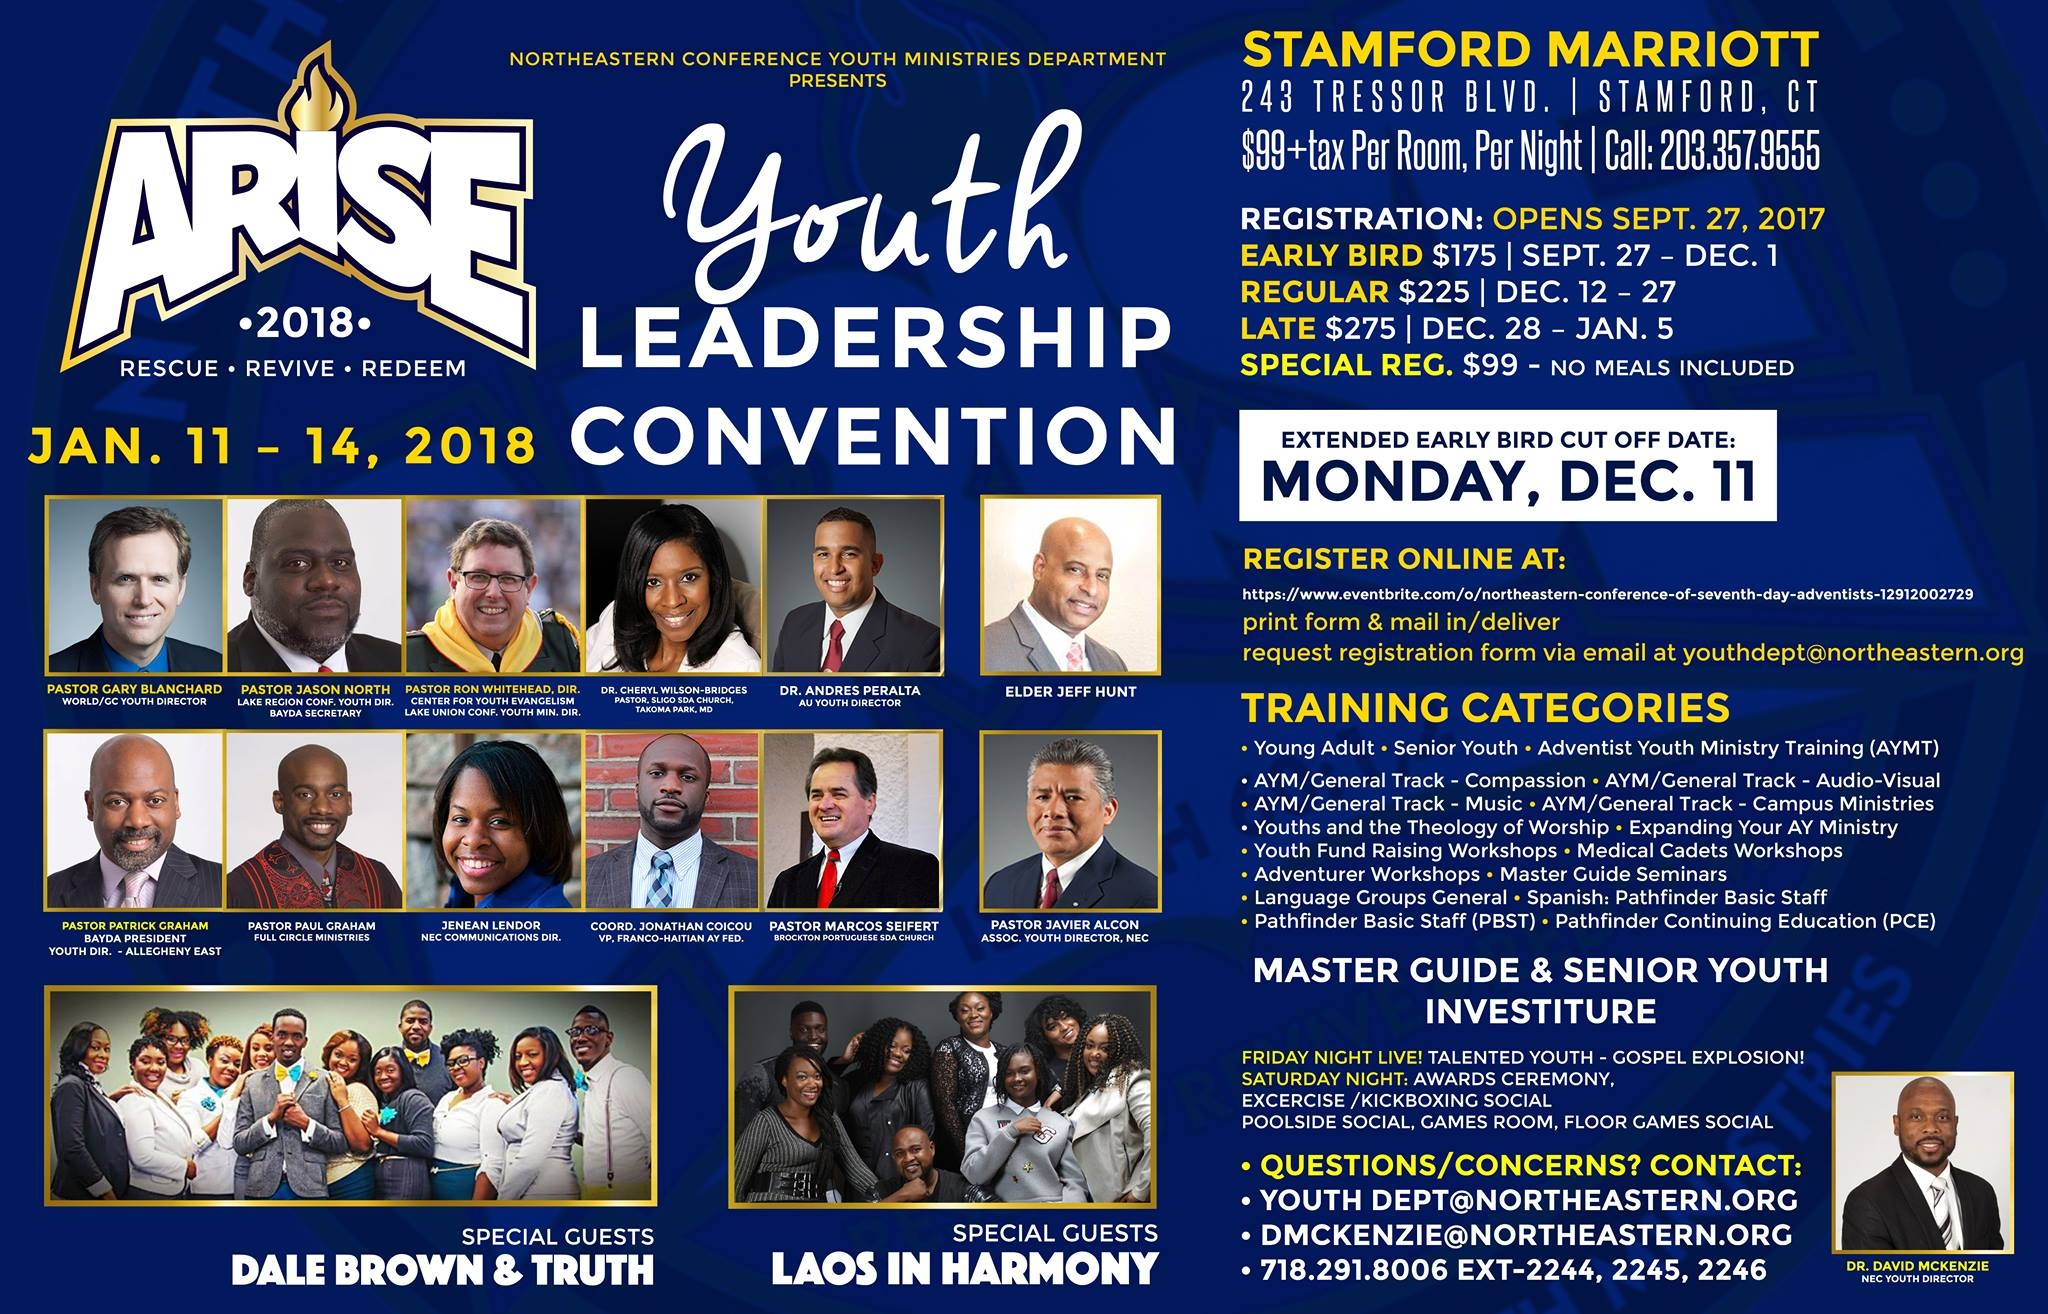 Arise 2018 NEC Youth Ministries Convention — Northeastern Conference